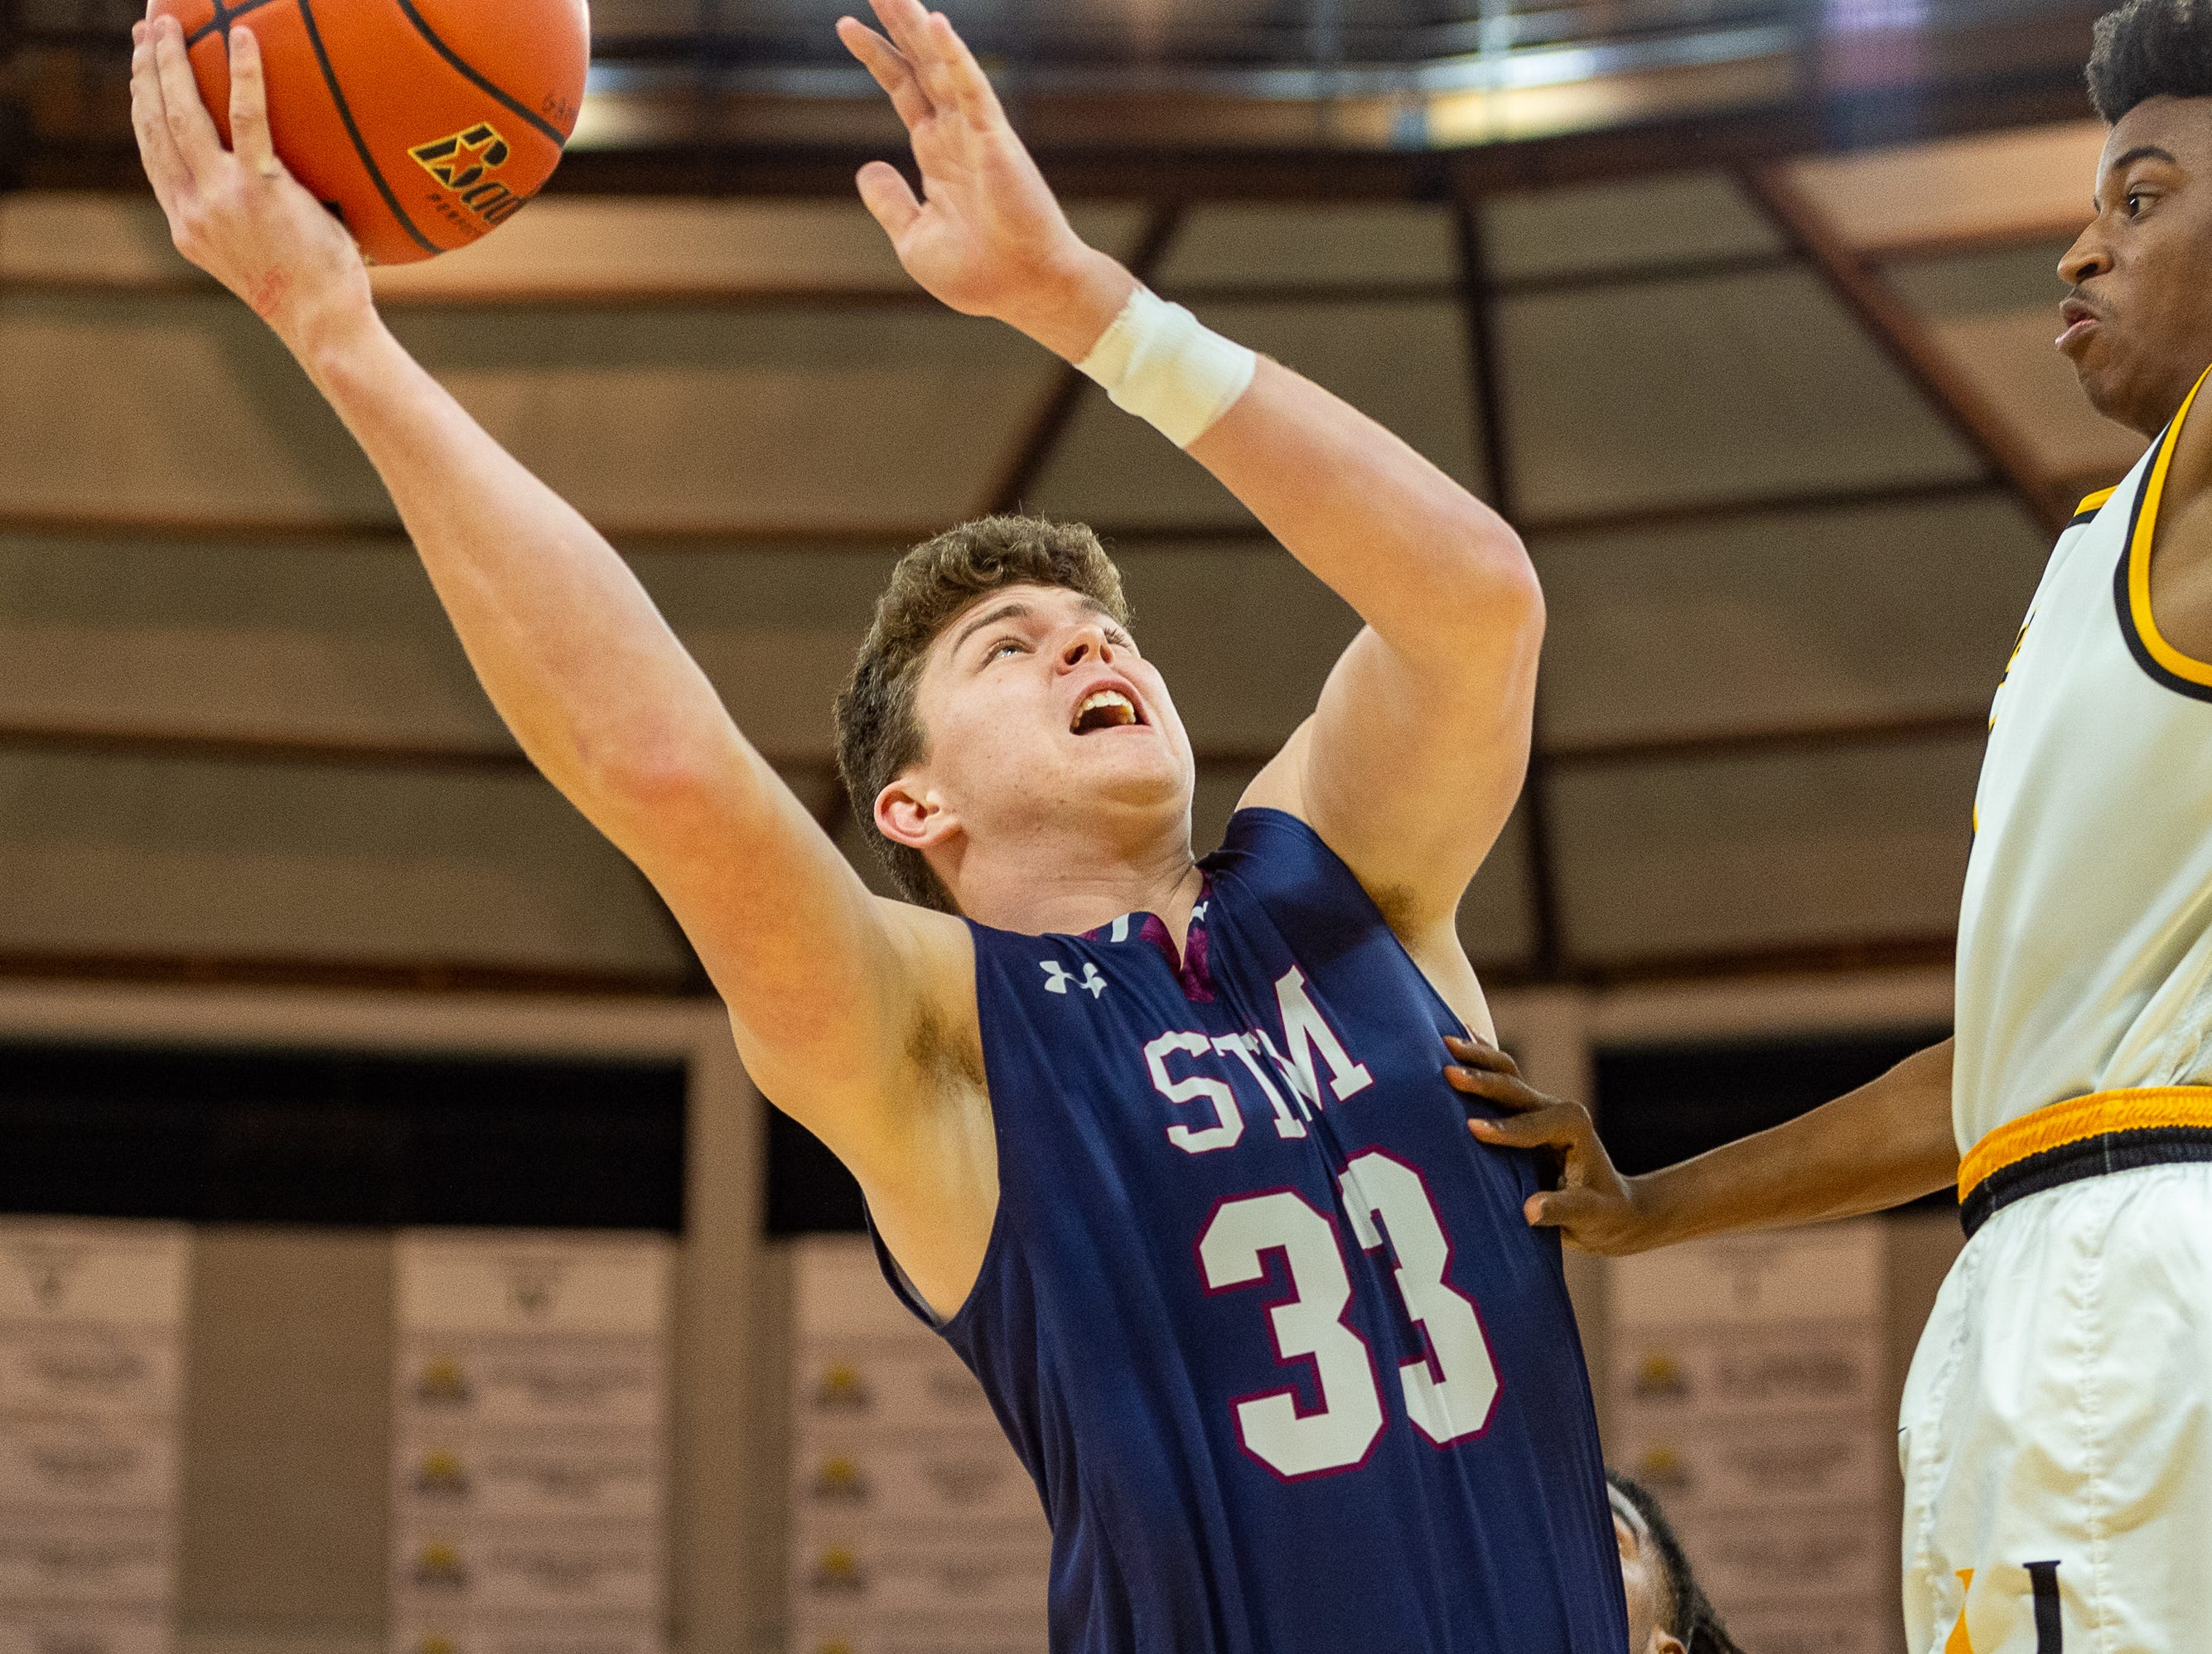 St. Thomas More's Caleb Holstein shoots the ball as STM takes down University High in the semifinal round of the LHSAA Division II basketball State Championships on Wednesday, March 6, 2019.